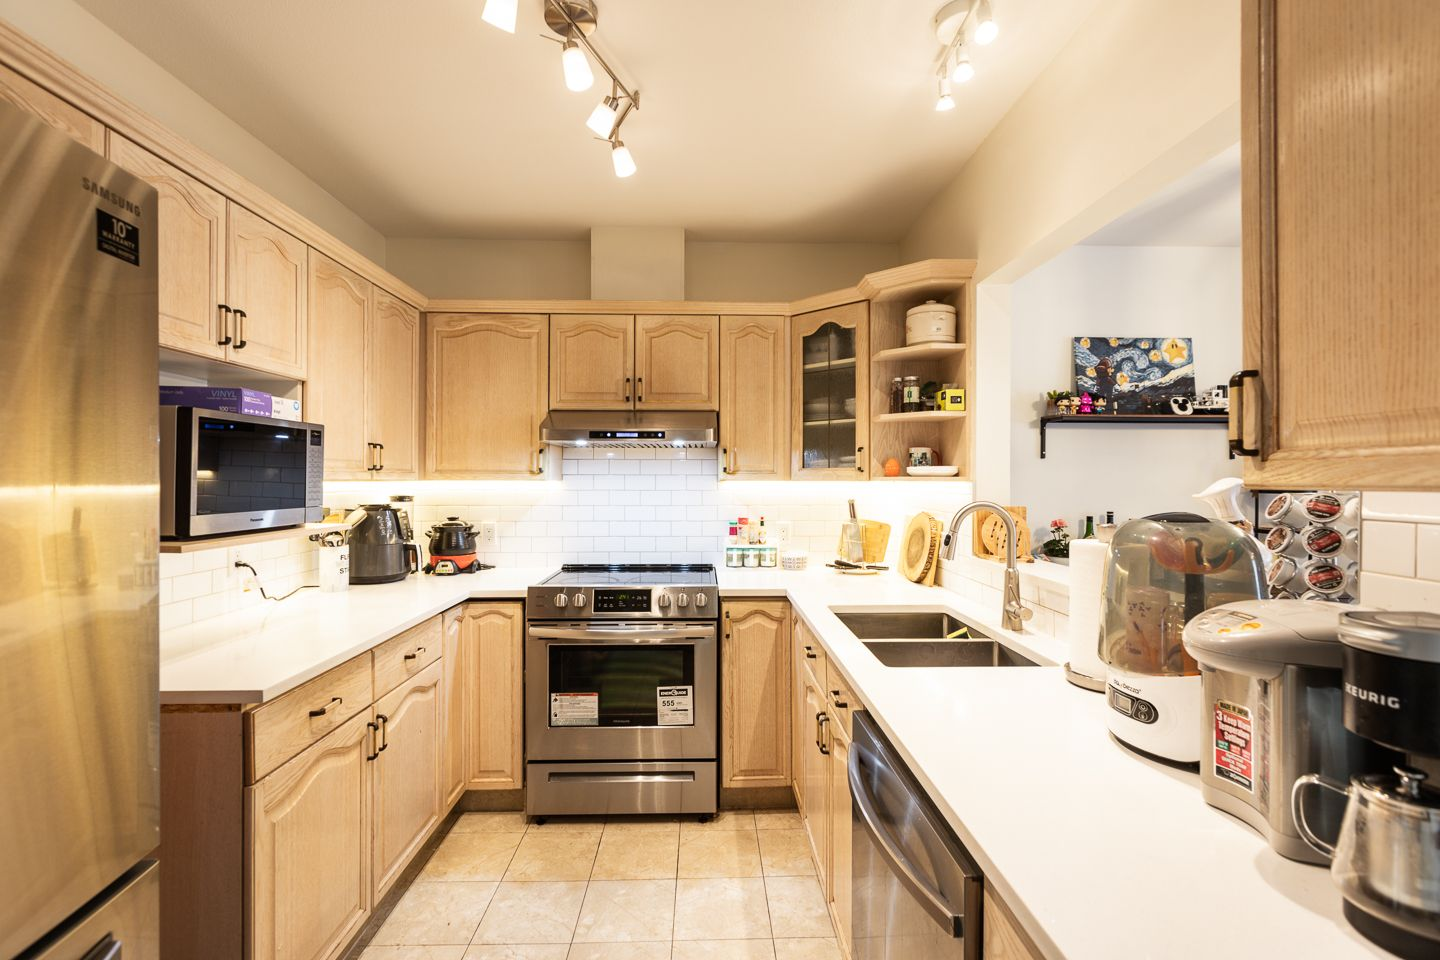 Photo 5: Photos: #8-3701 THURSTON ST in BURNABY: Central Park BS Condo for sale (Burnaby South)  : MLS®# R2572861